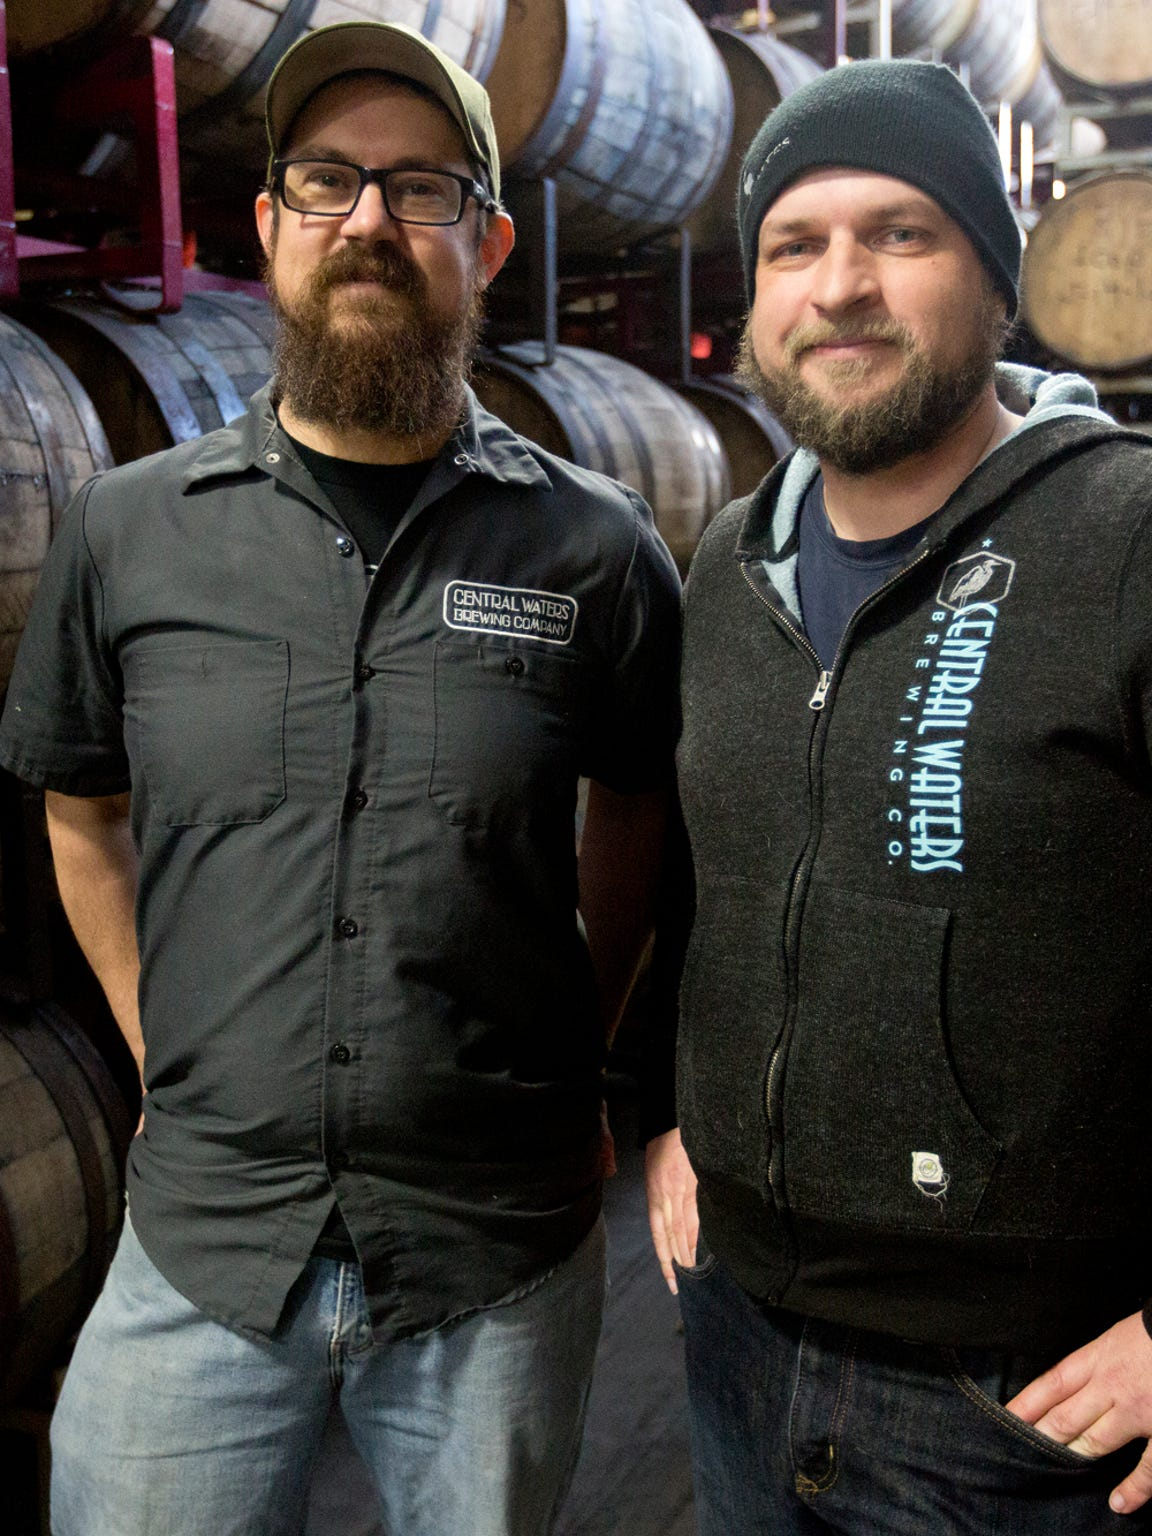 Central Waters owners Paul Graham, left, and Anello